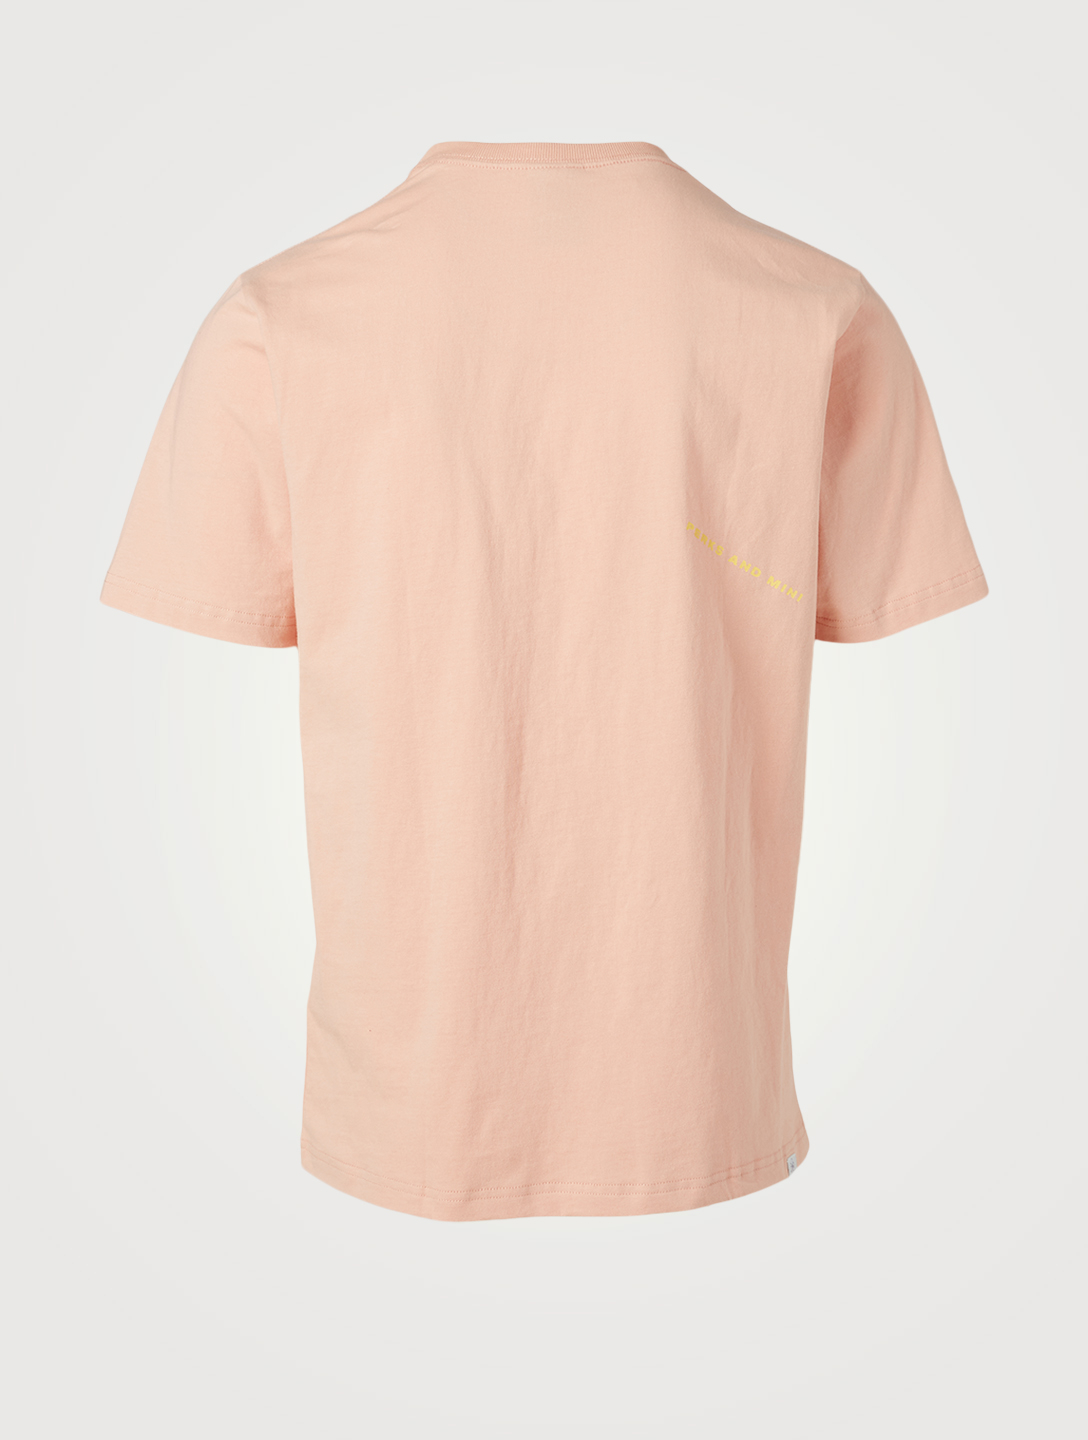 P.A.M. A Friendly Gesture Flower Cotton T-Shirt Men's Pink